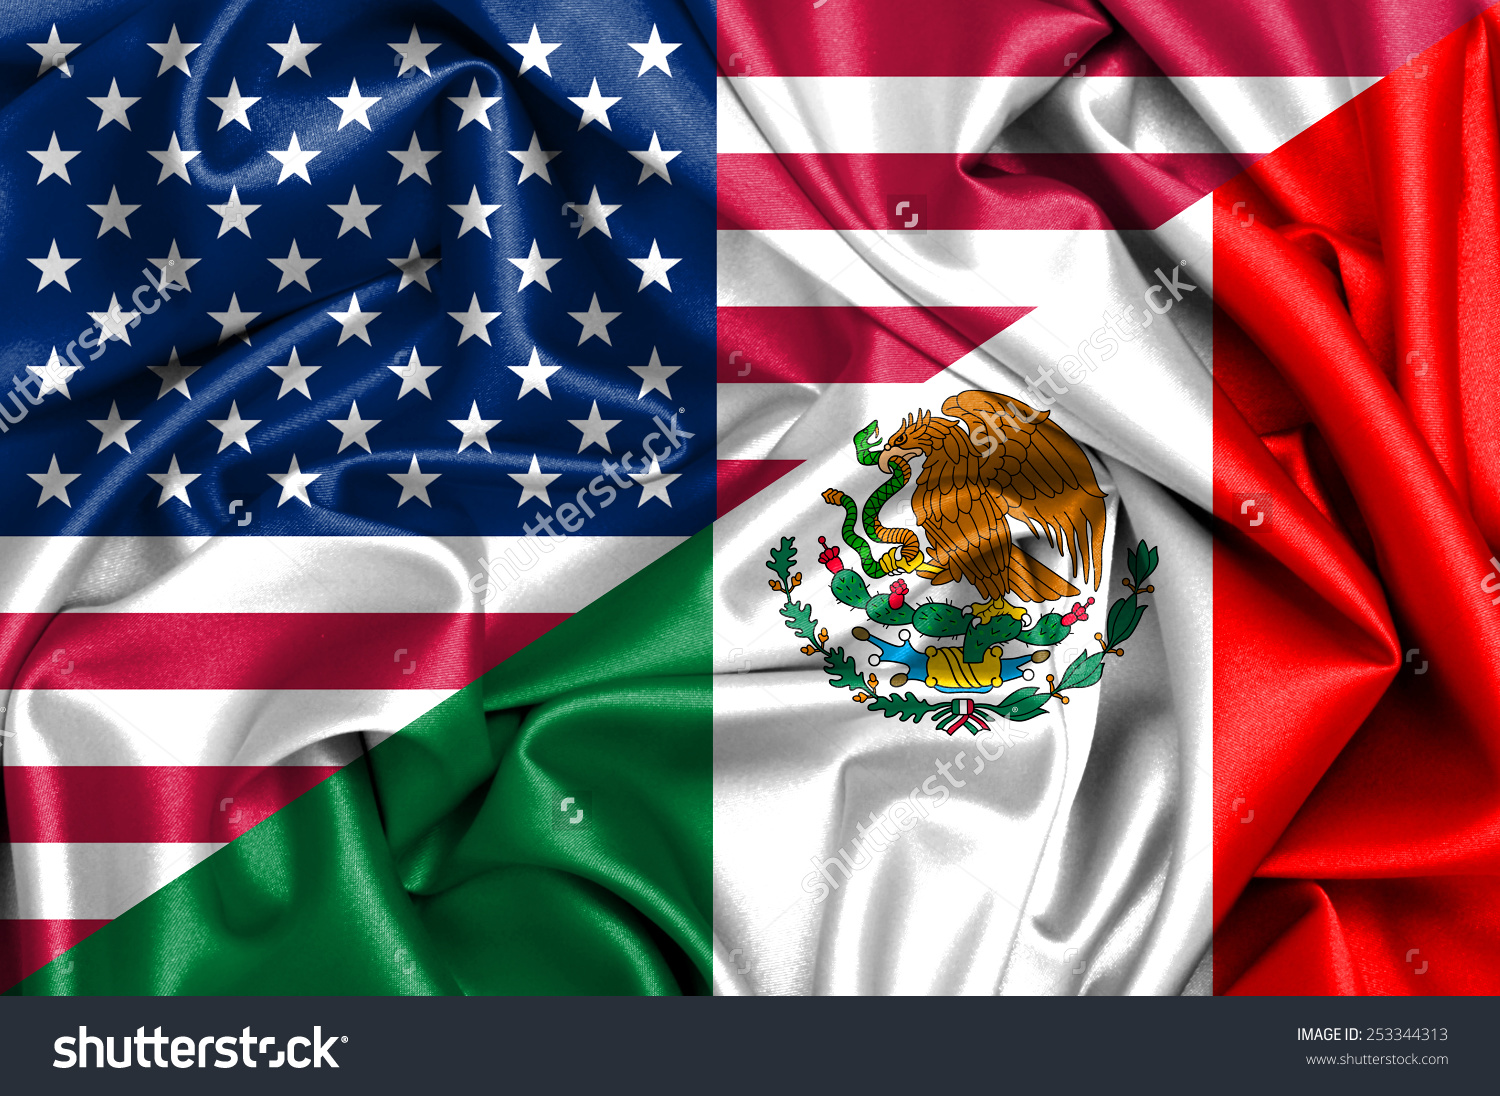 United states mexico flag clipart clip royalty free download Waving Flag Mexico Usa Stock Illustration 253344313 - Shutterstock clip royalty free download